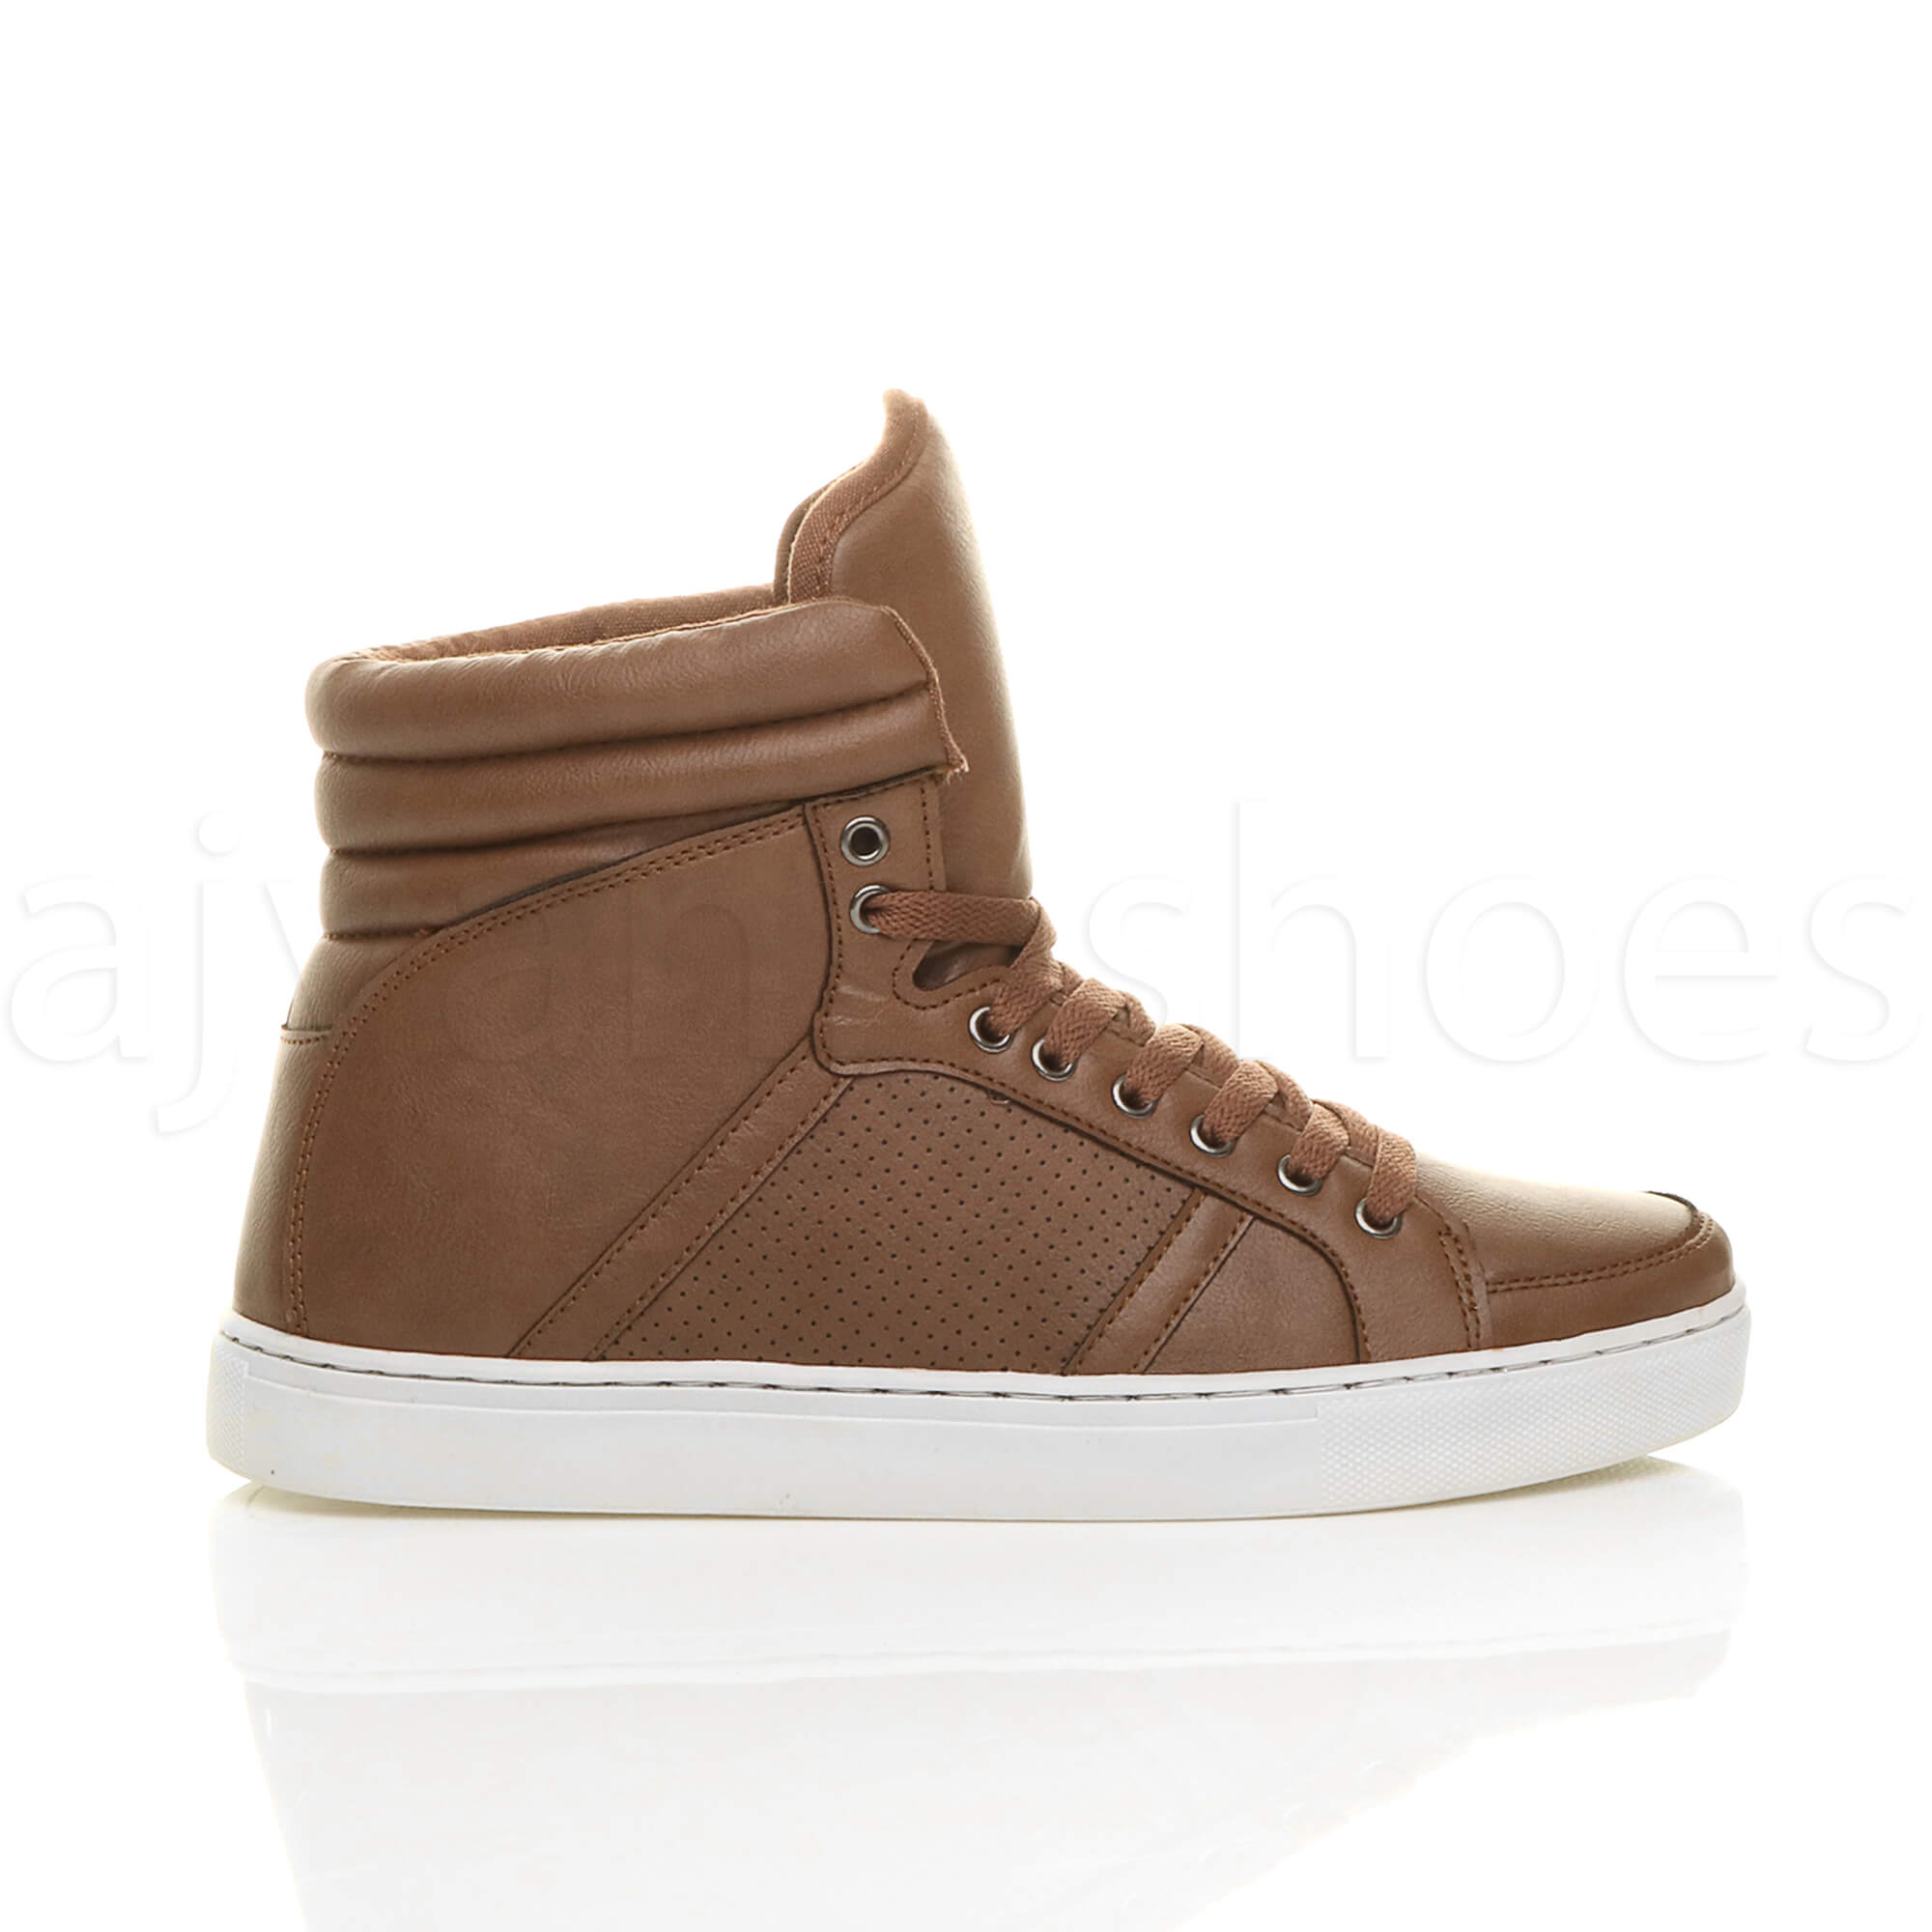 MENS-LACE-UP-CASUAL-FLAT-HI-HIGH-TOP-ANKLE-BOOTS-SHOES-TRAINERS-SNEAKERS-SIZE thumbnail 24